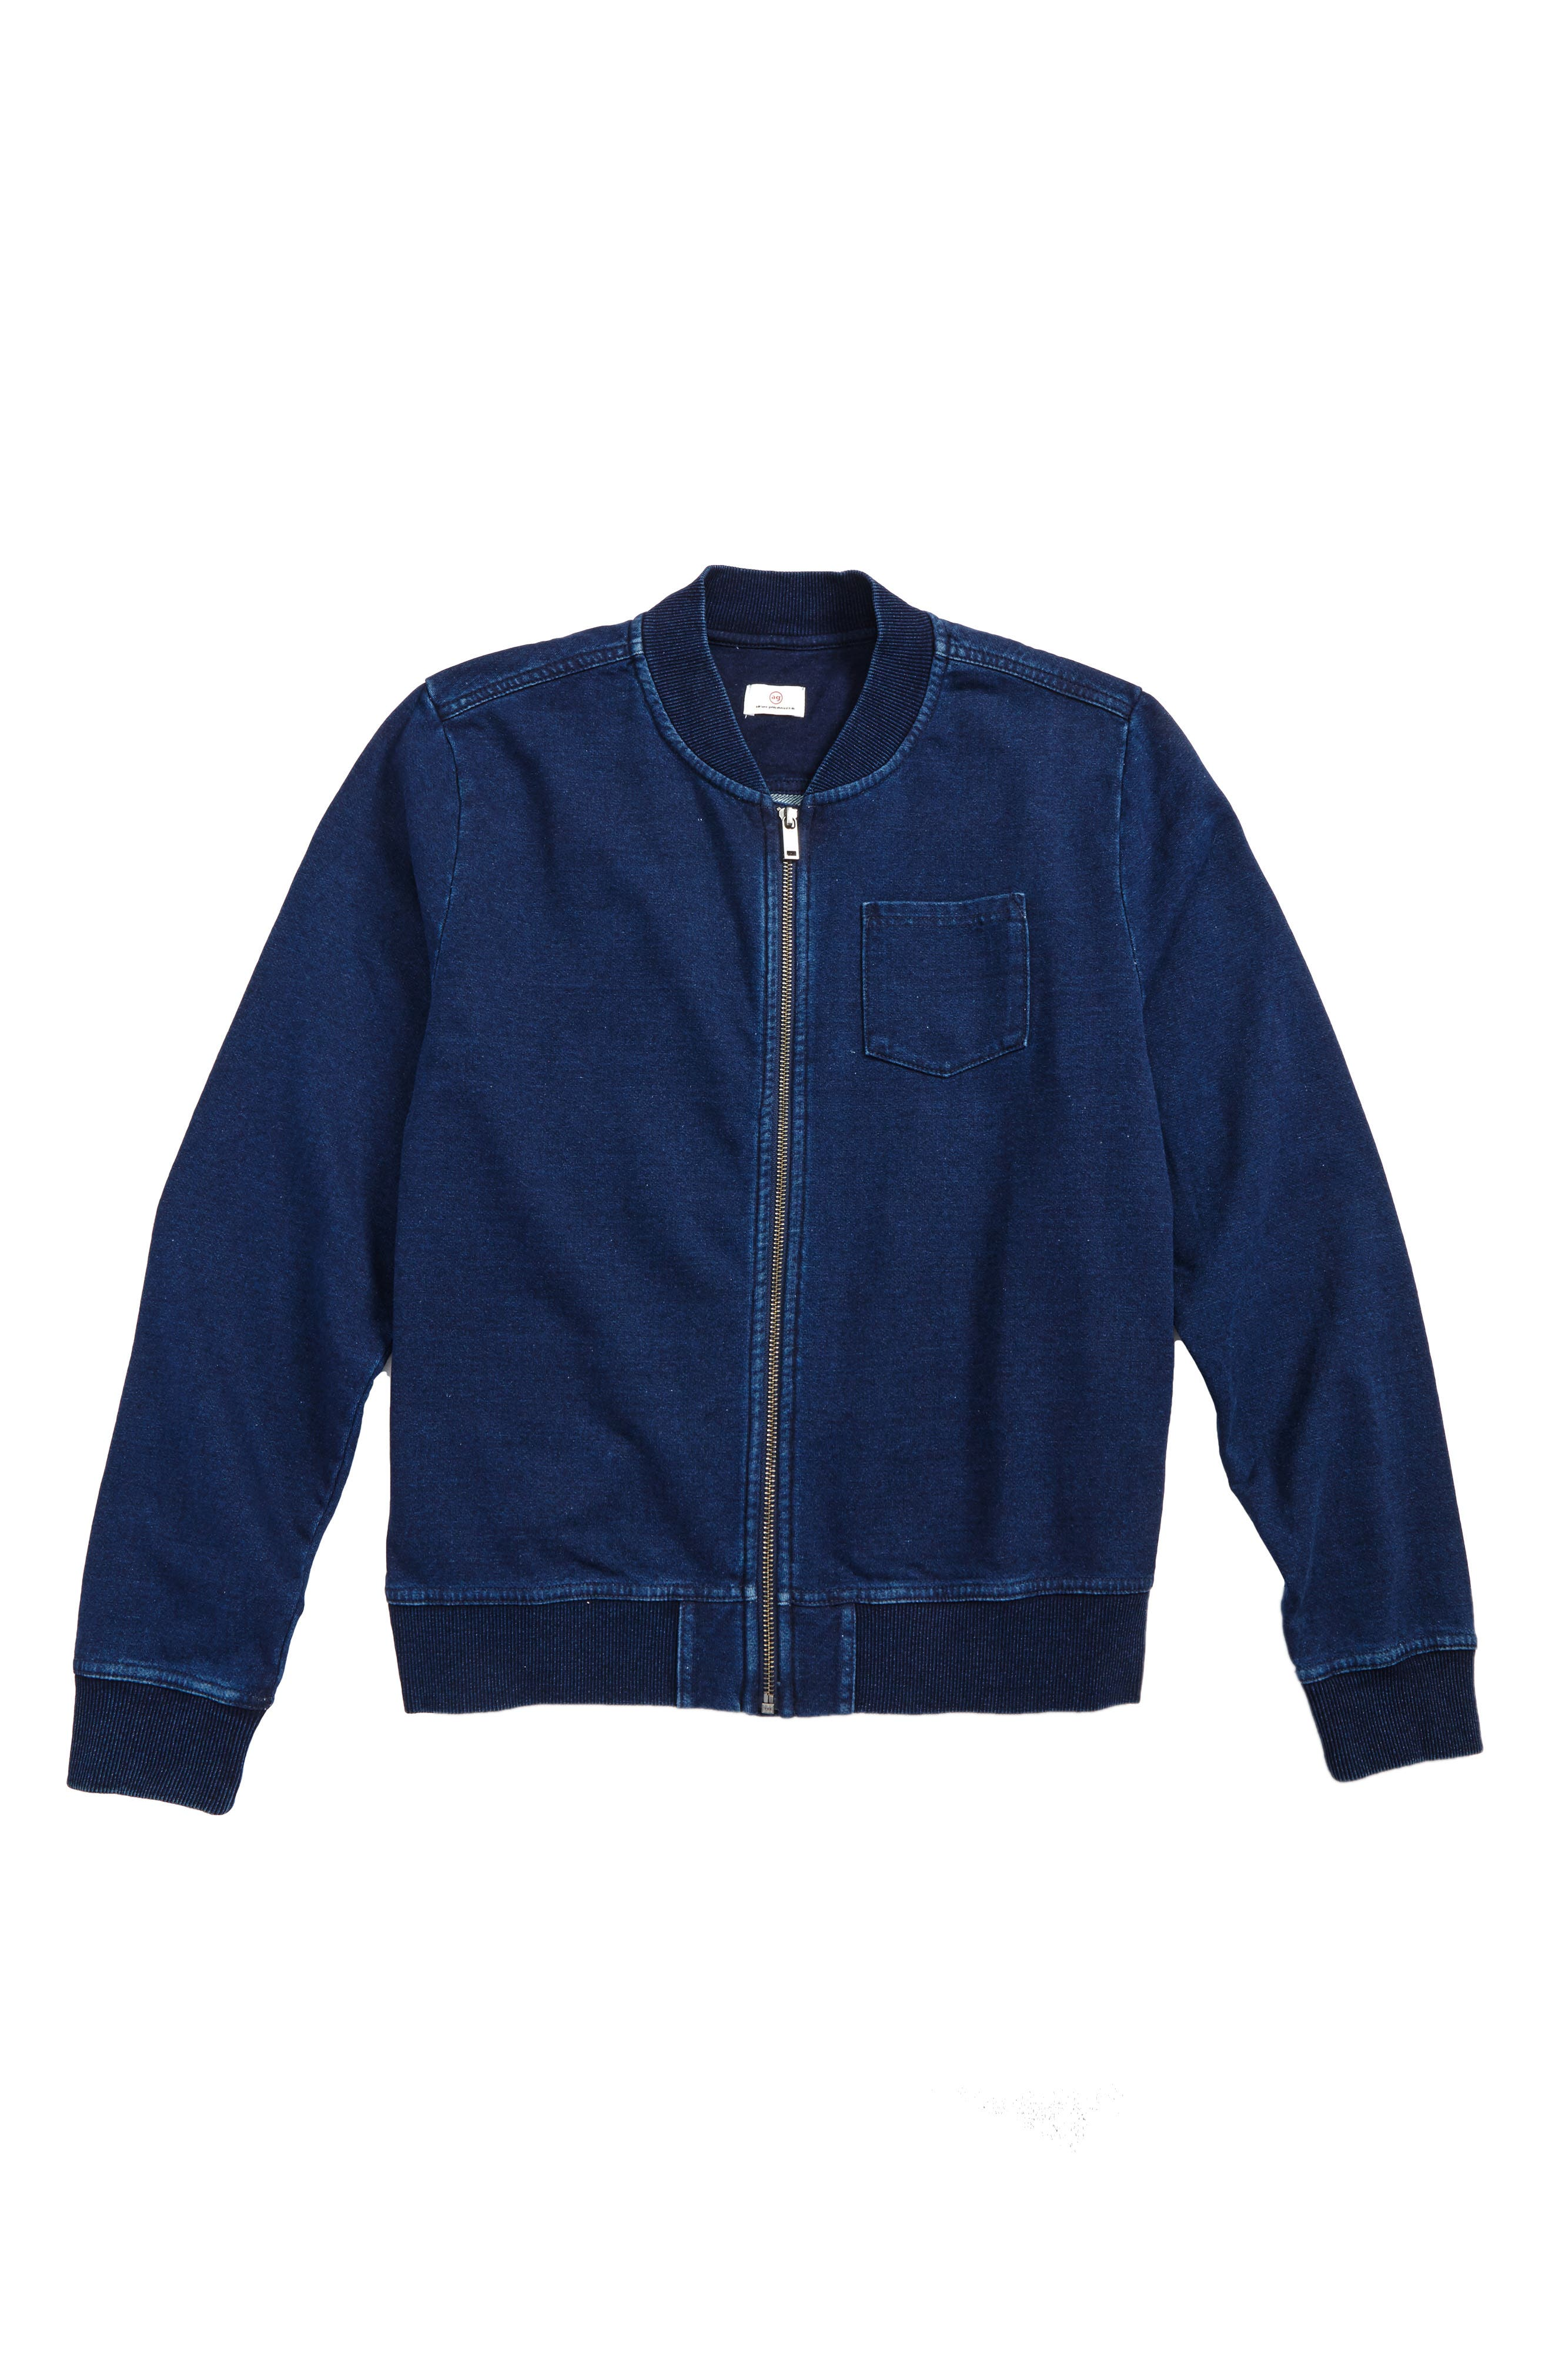 Knit Bomber Jacket,                             Main thumbnail 1, color,                             490